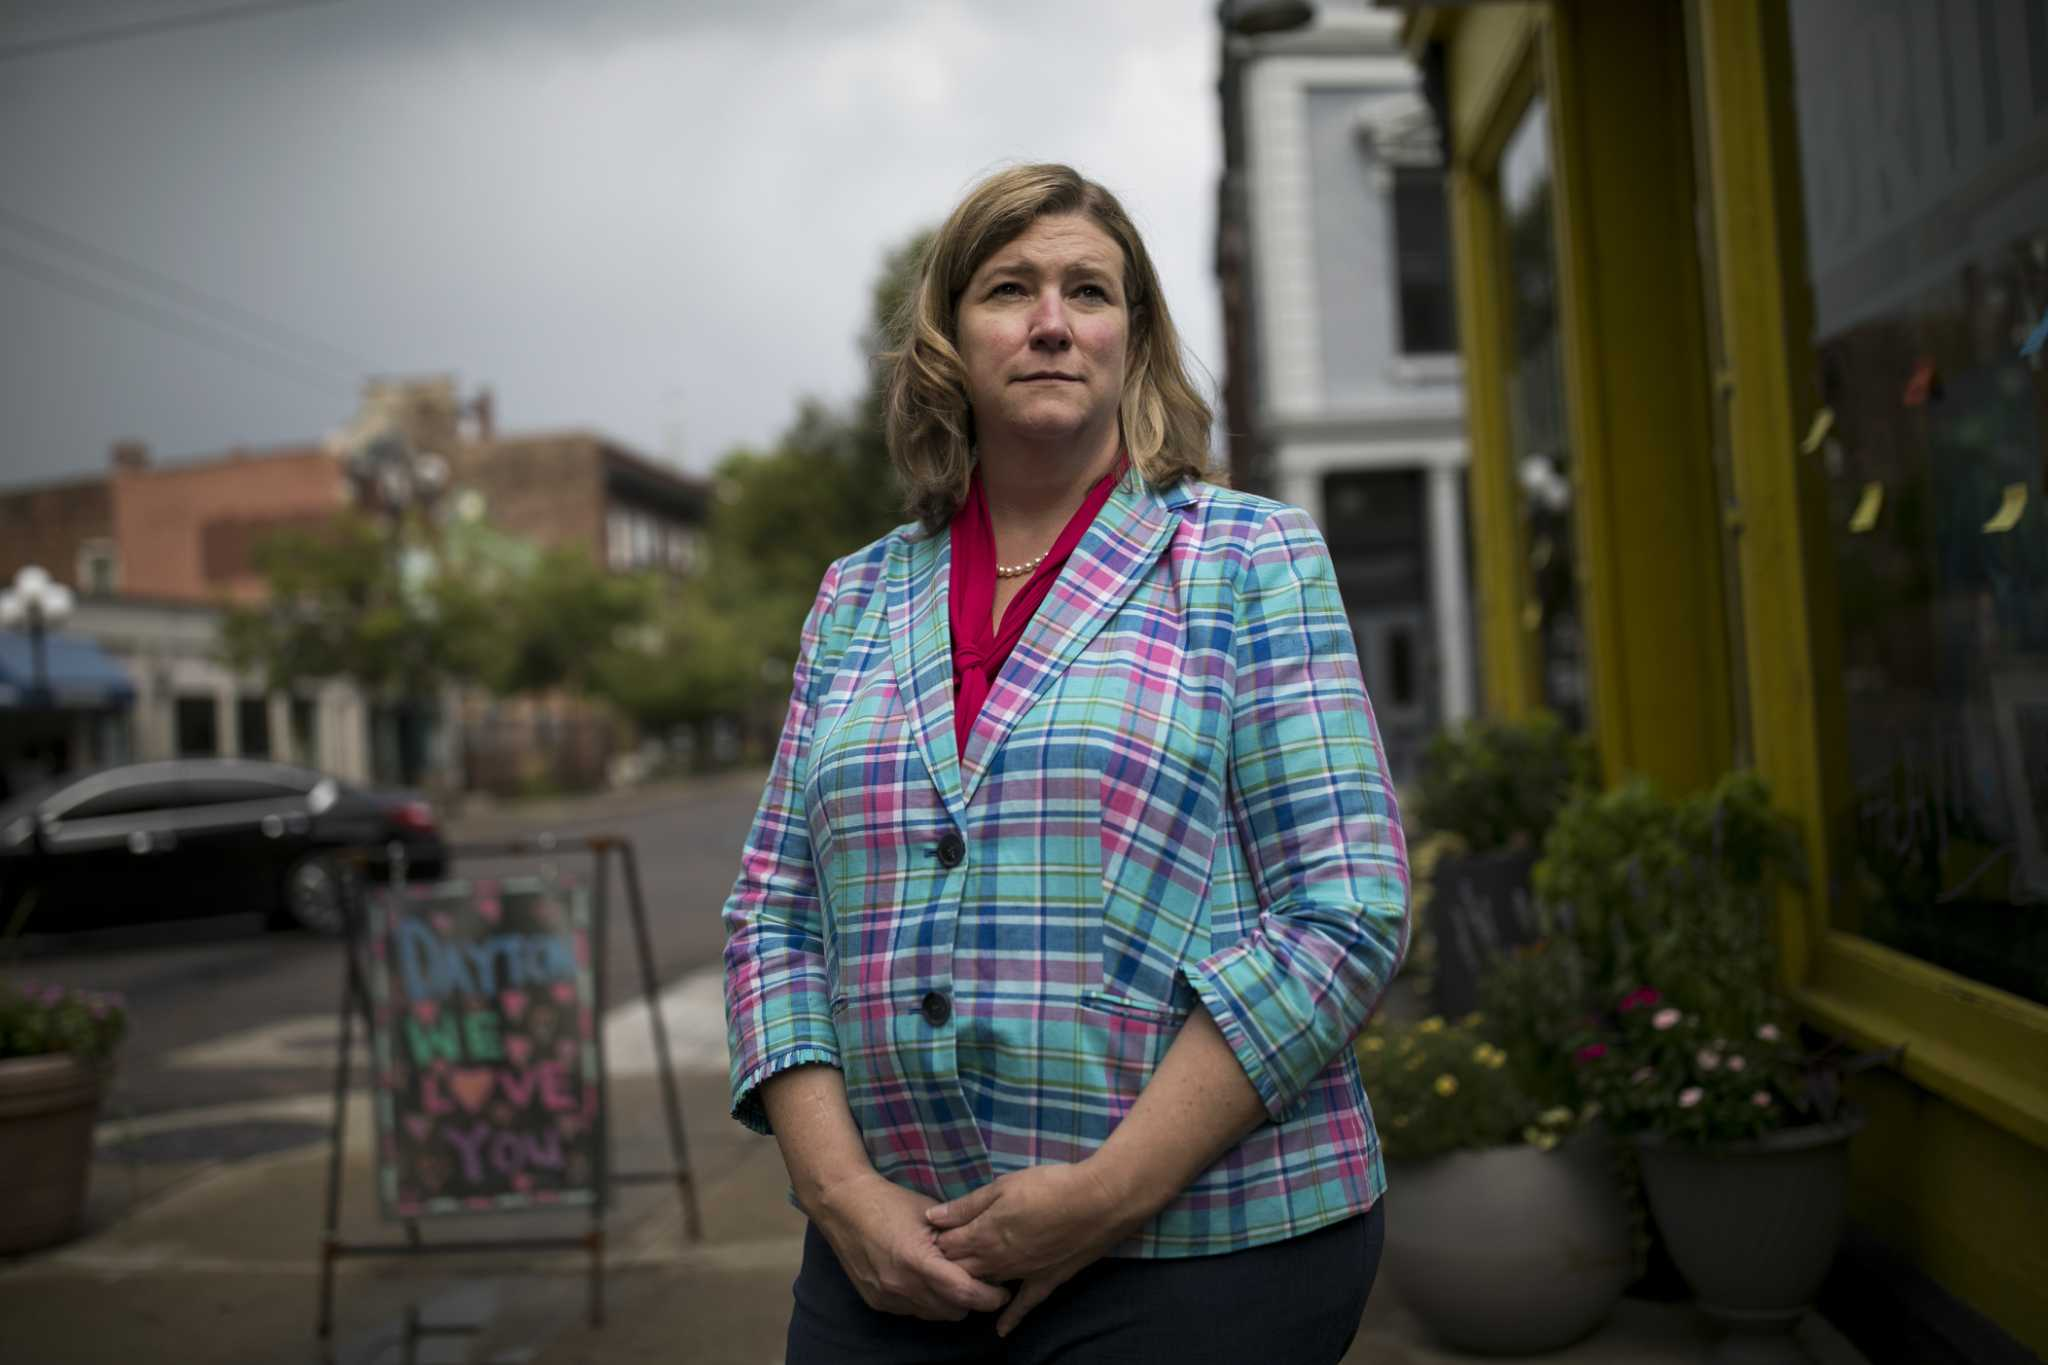 After shooting, Dayton Mayor Nan Whaley decided to speak up